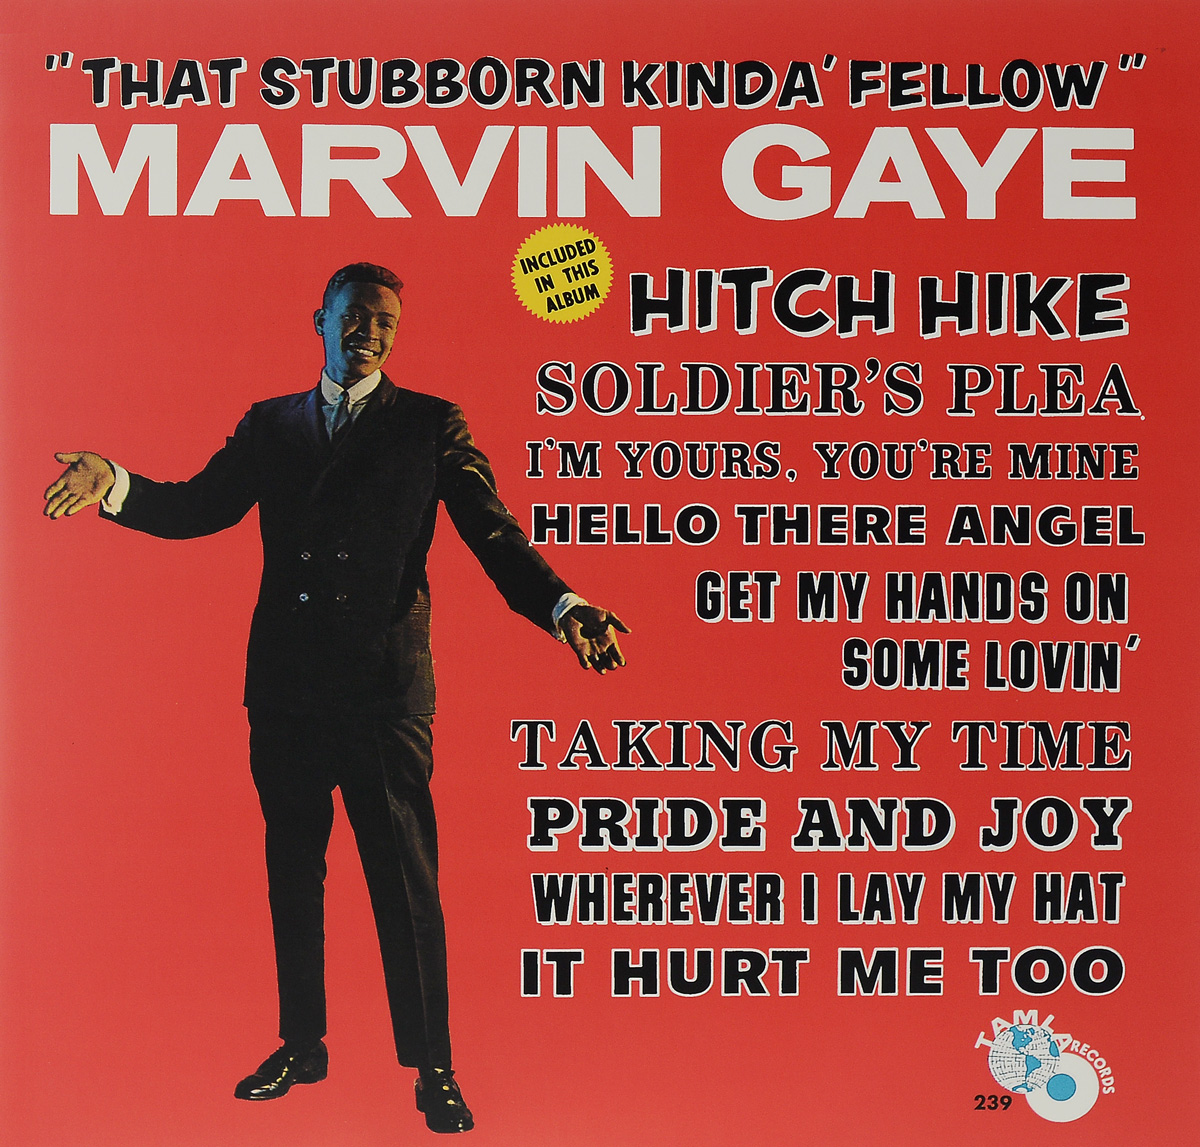 Марвин Гэй Marvin Gaye. That Stubborn Kinda' Fellow (LP) марвин гэй marvin gaye what s going on blu ray audio